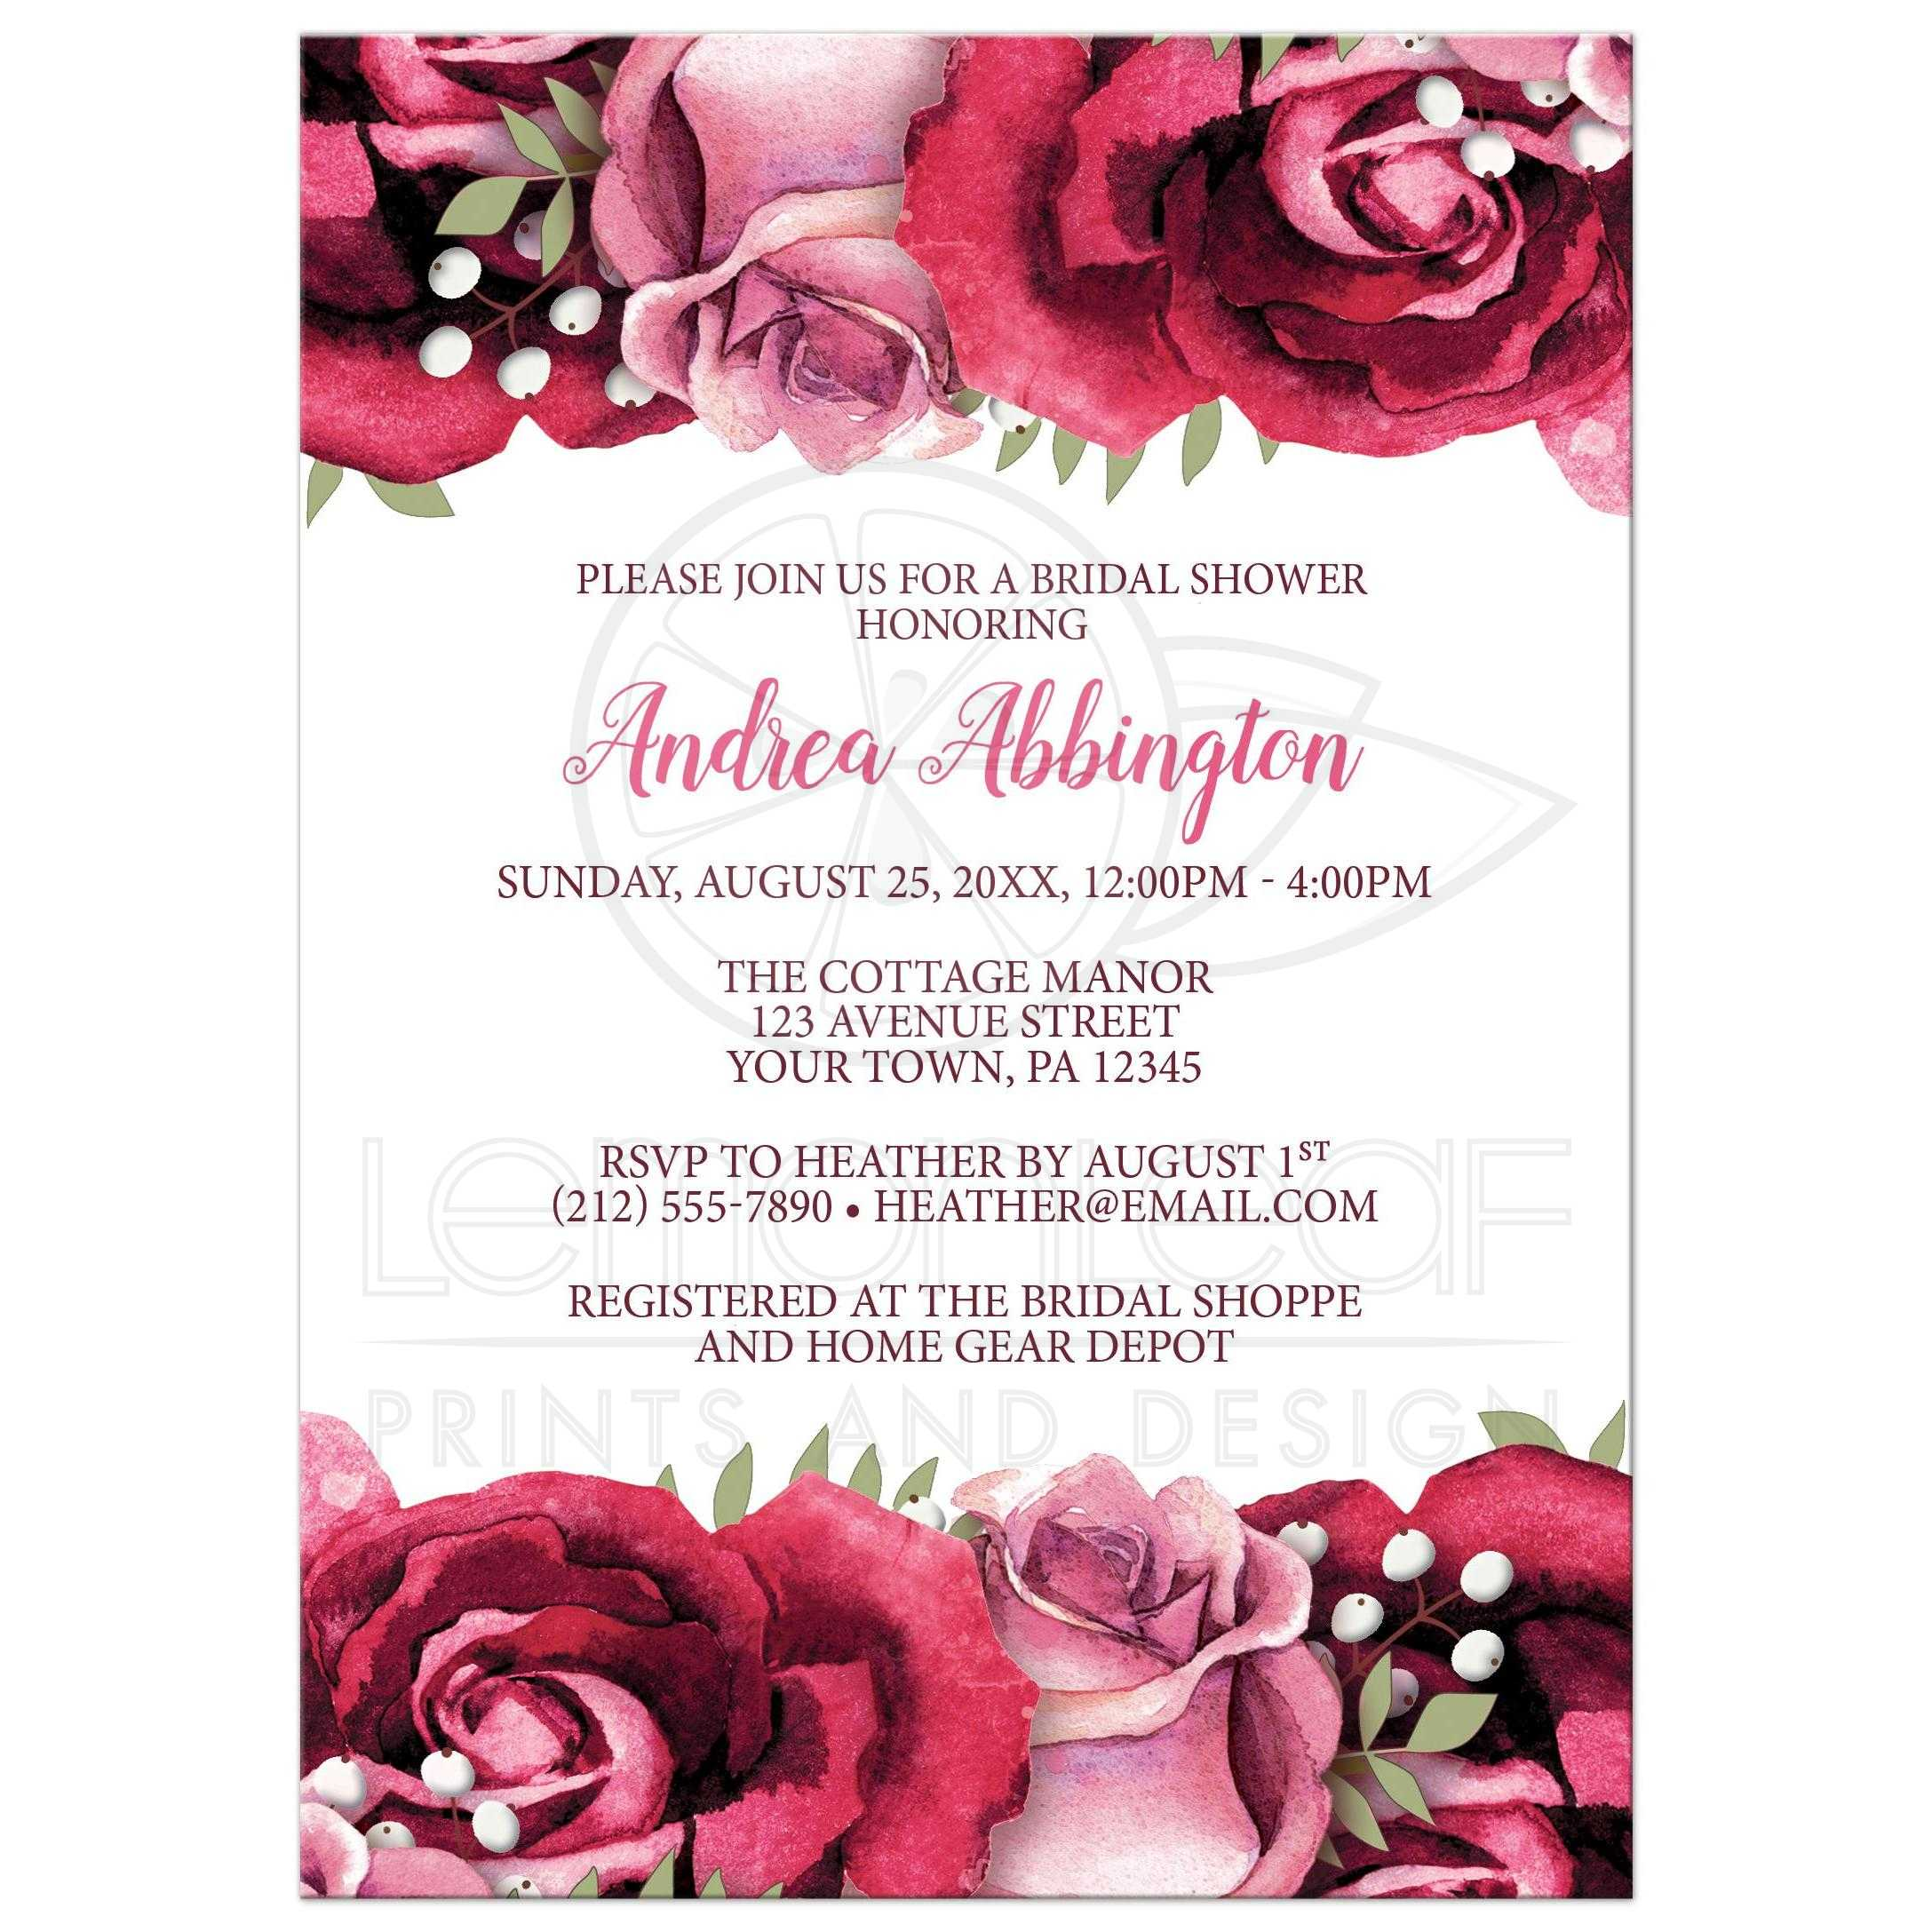 Bridal Shower Invitations - Burgundy Pink Rose White Rustic